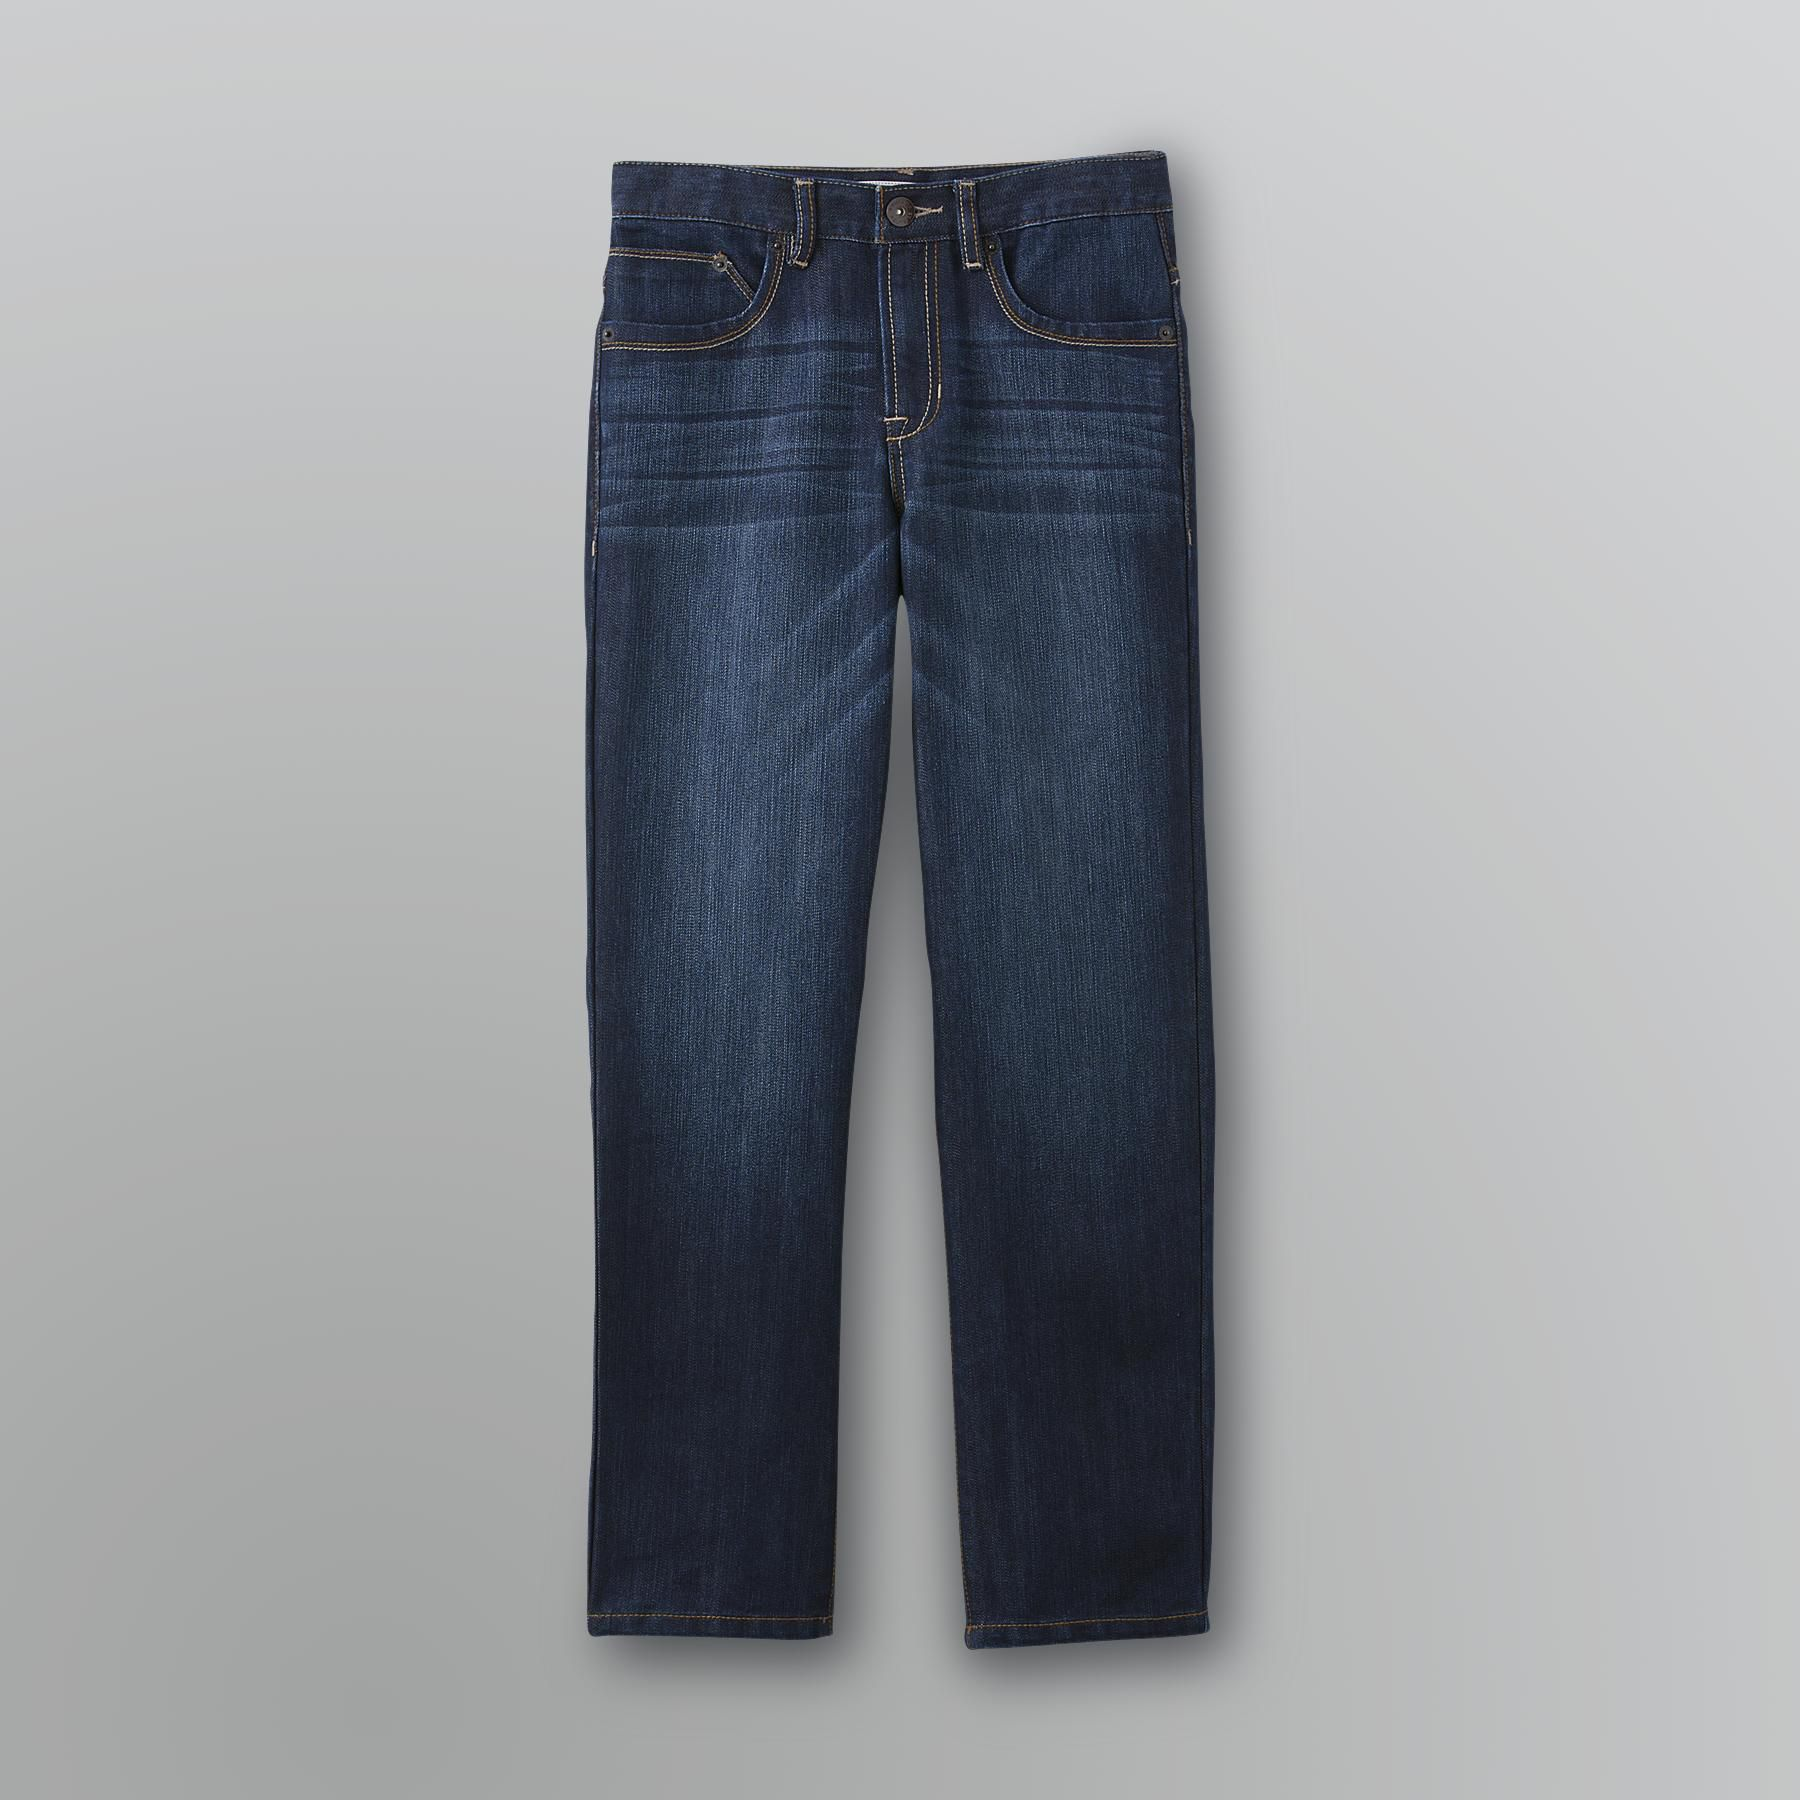 Route 66 Boy's Slim Straight Dark Wash Denim Jeans